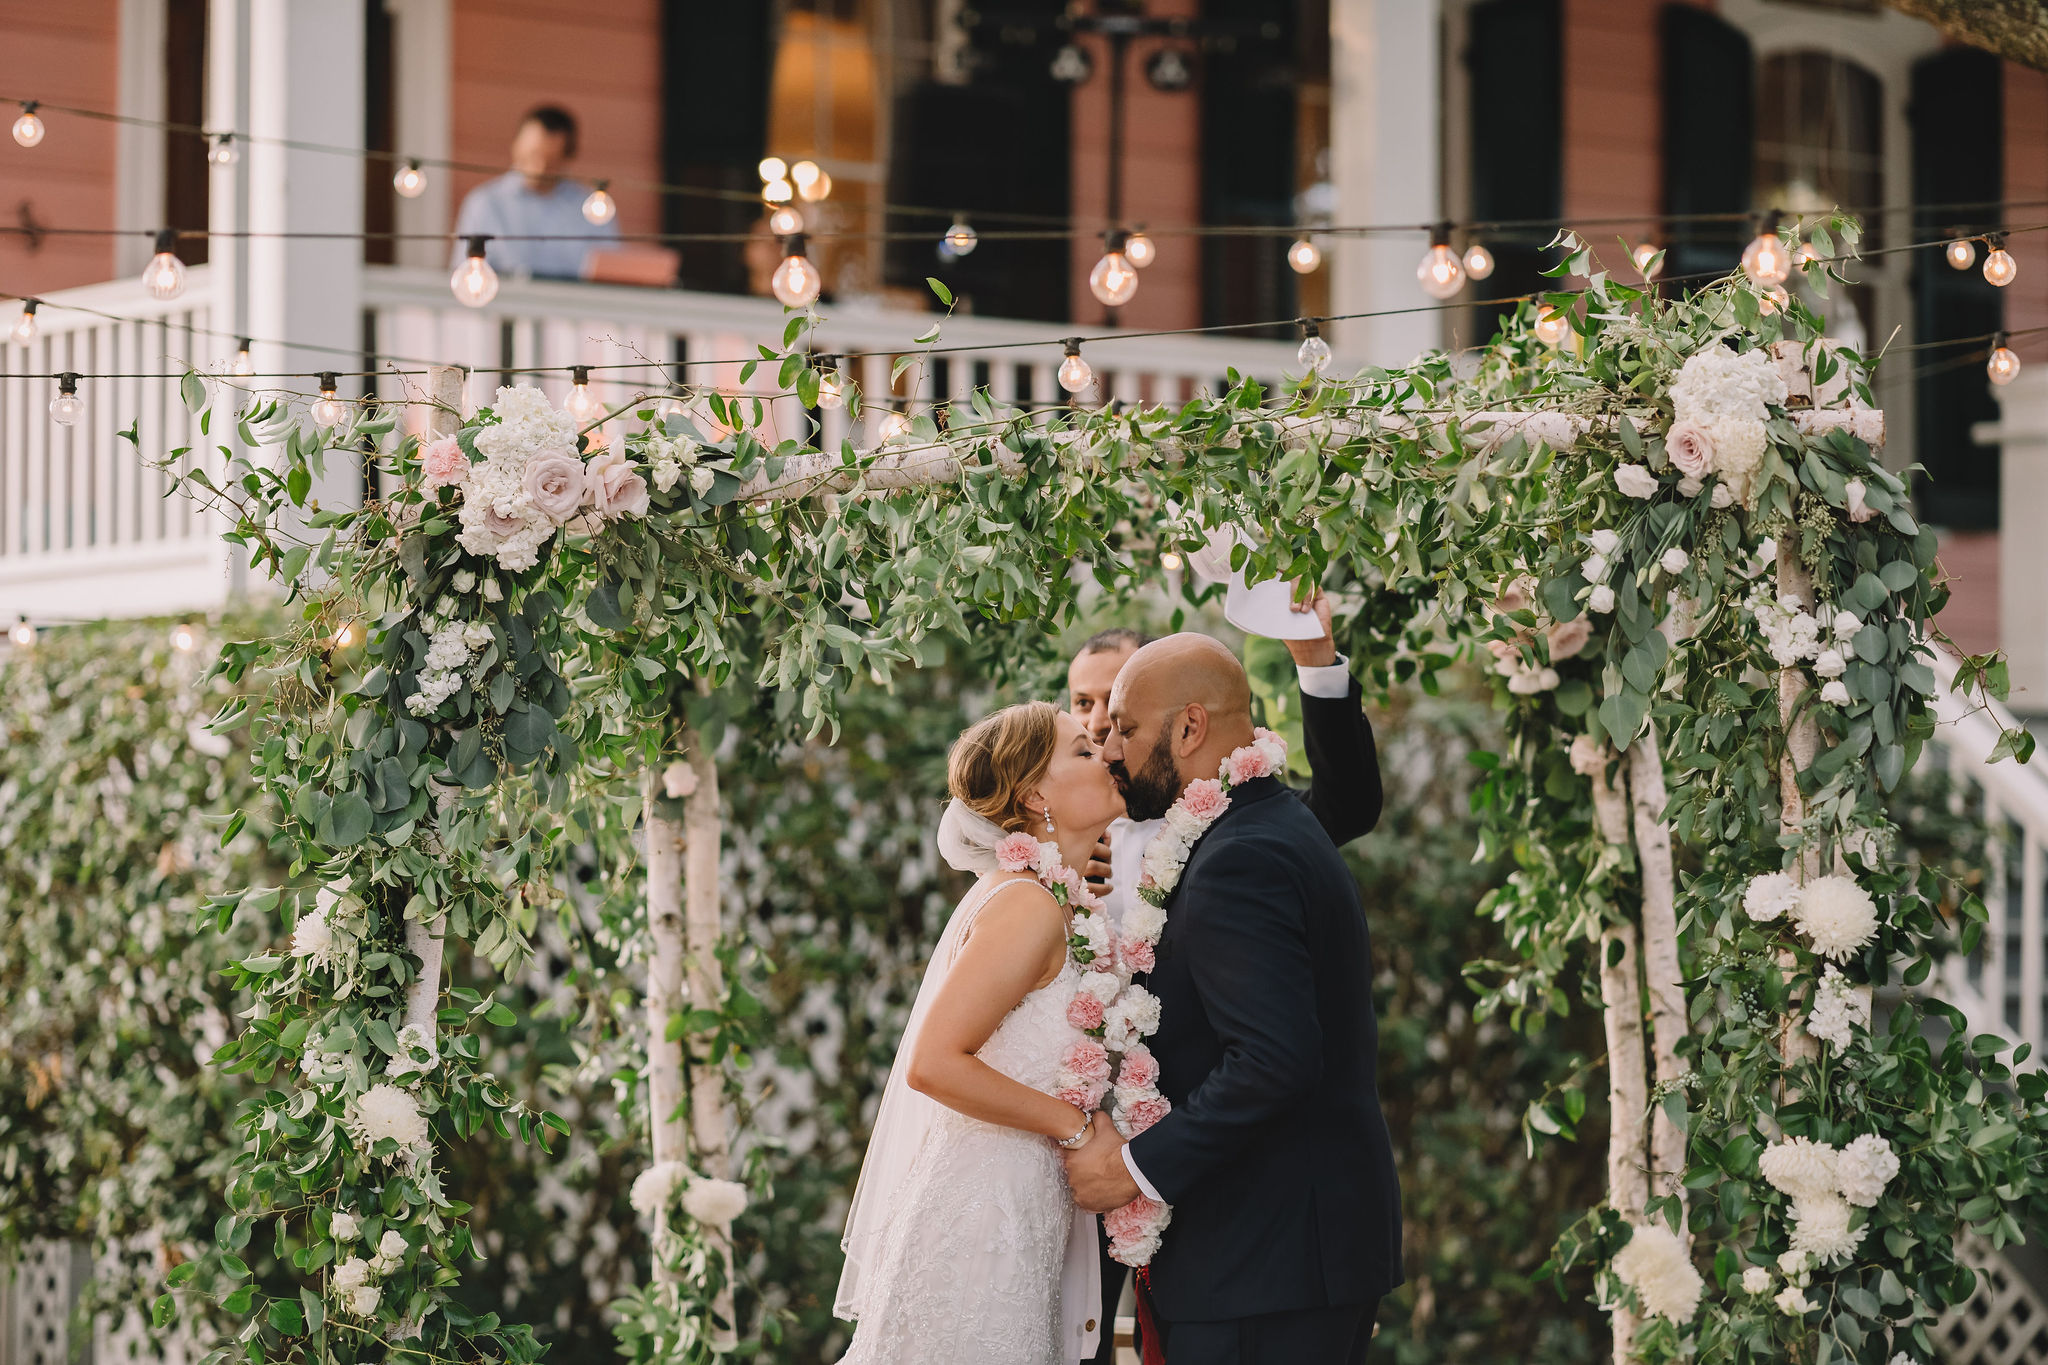 REAL WEDDING:: RACHEL YOUNG + JIMMY SONI {Multicultural Matrimony}